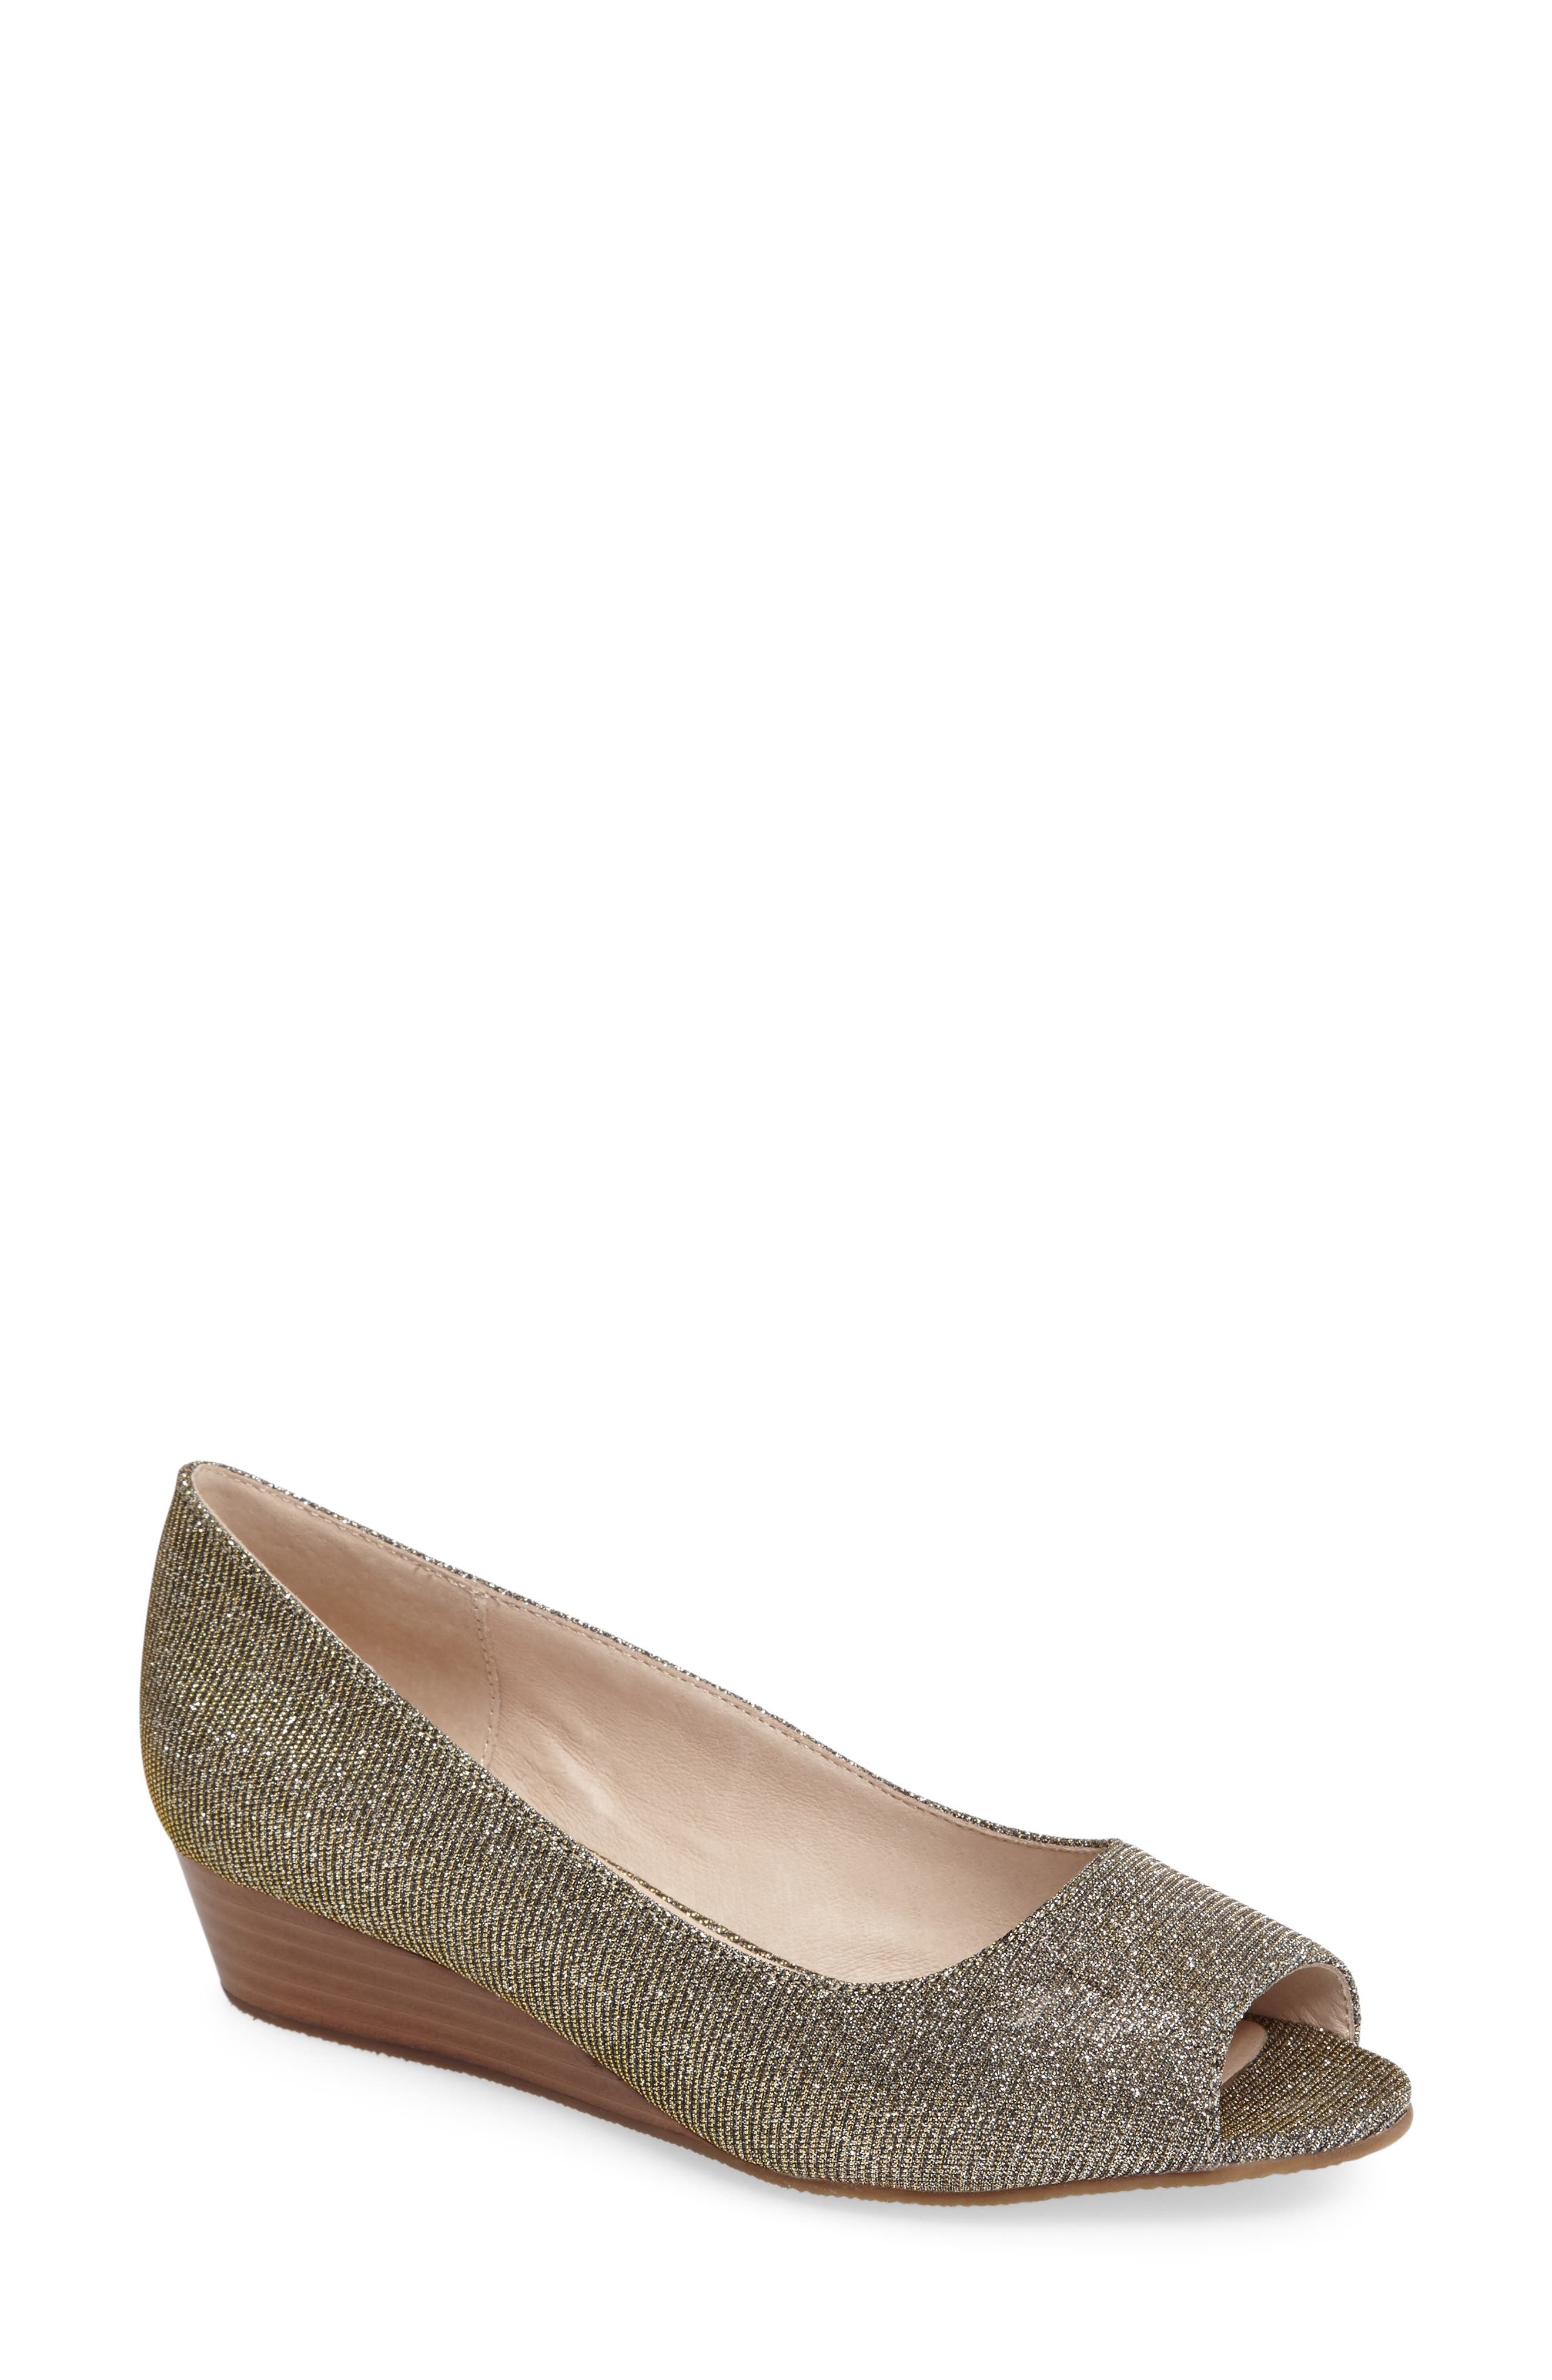 Sudini 'Willa' Peep Toe Wedge ...